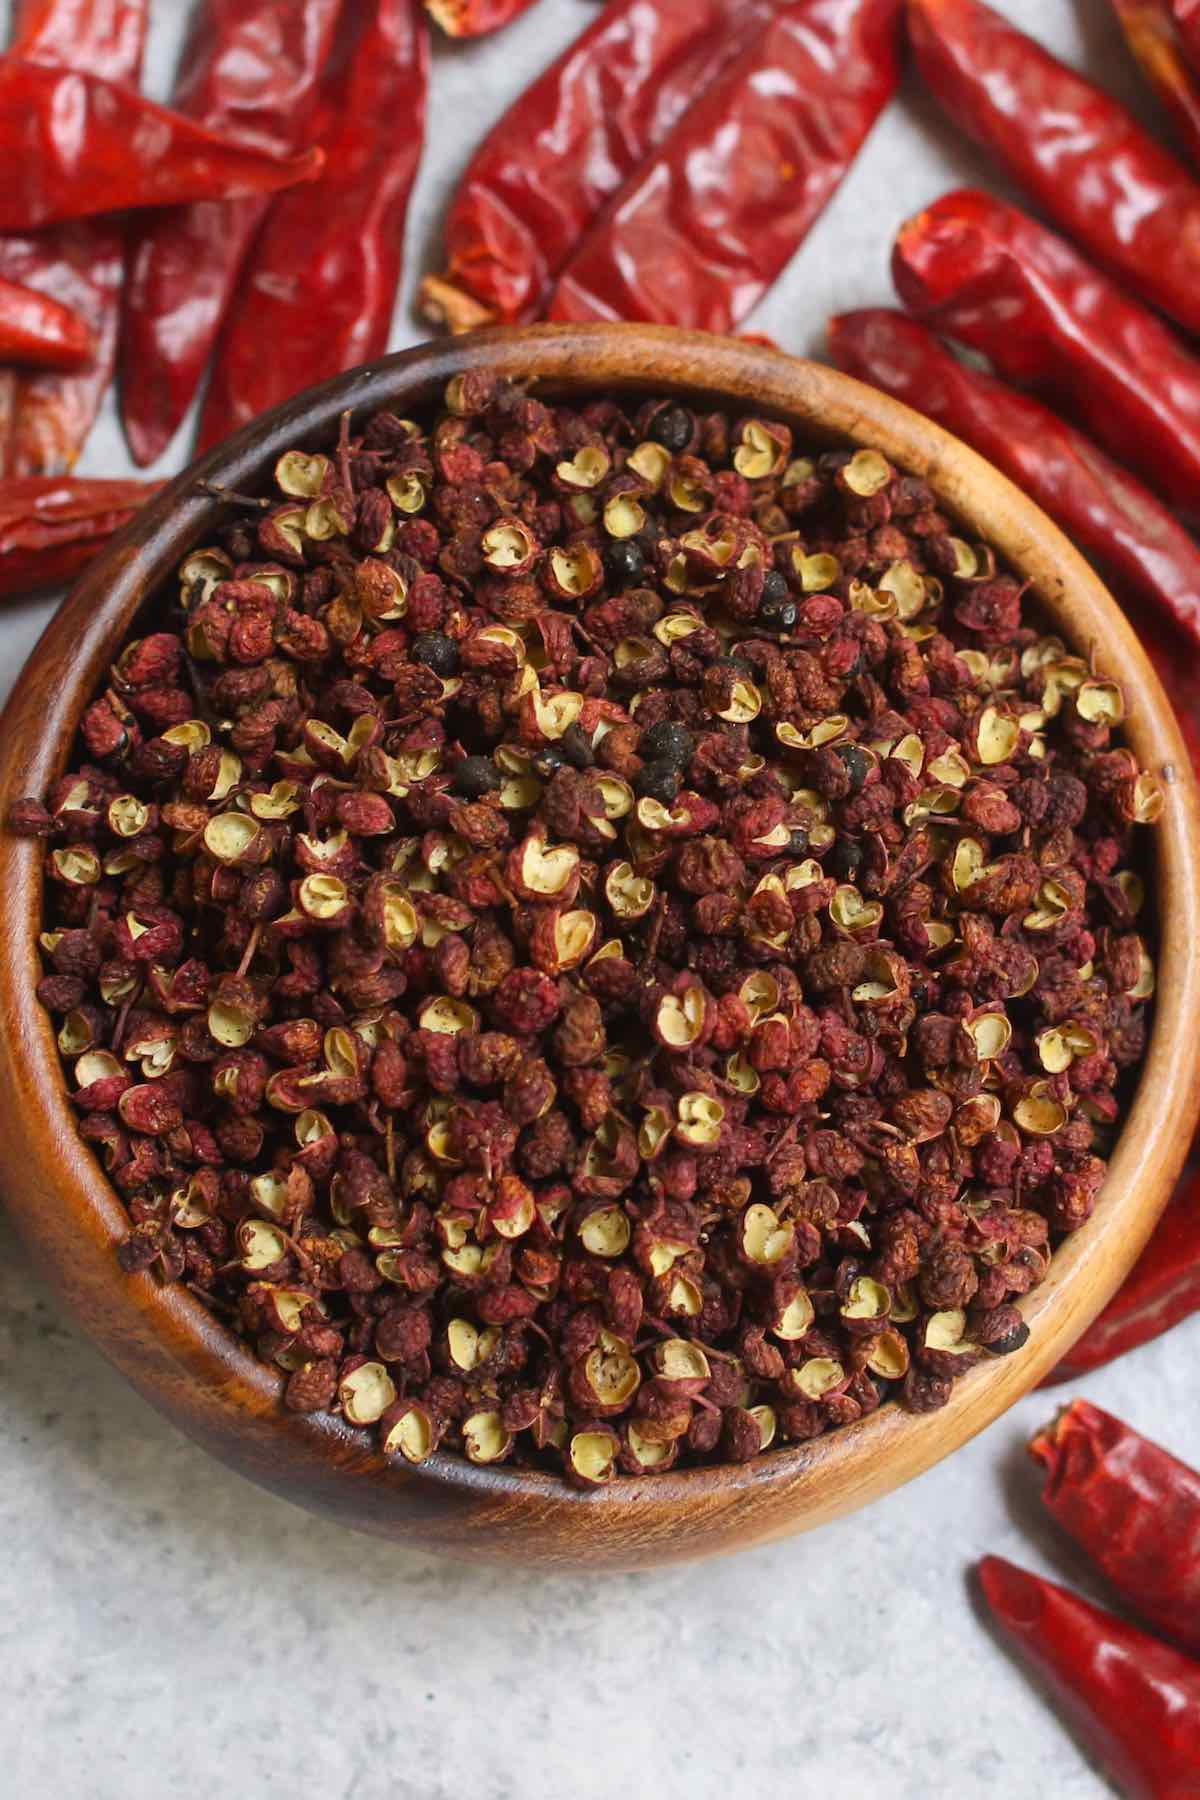 Szechuan peppercorns in a wooden bowl.